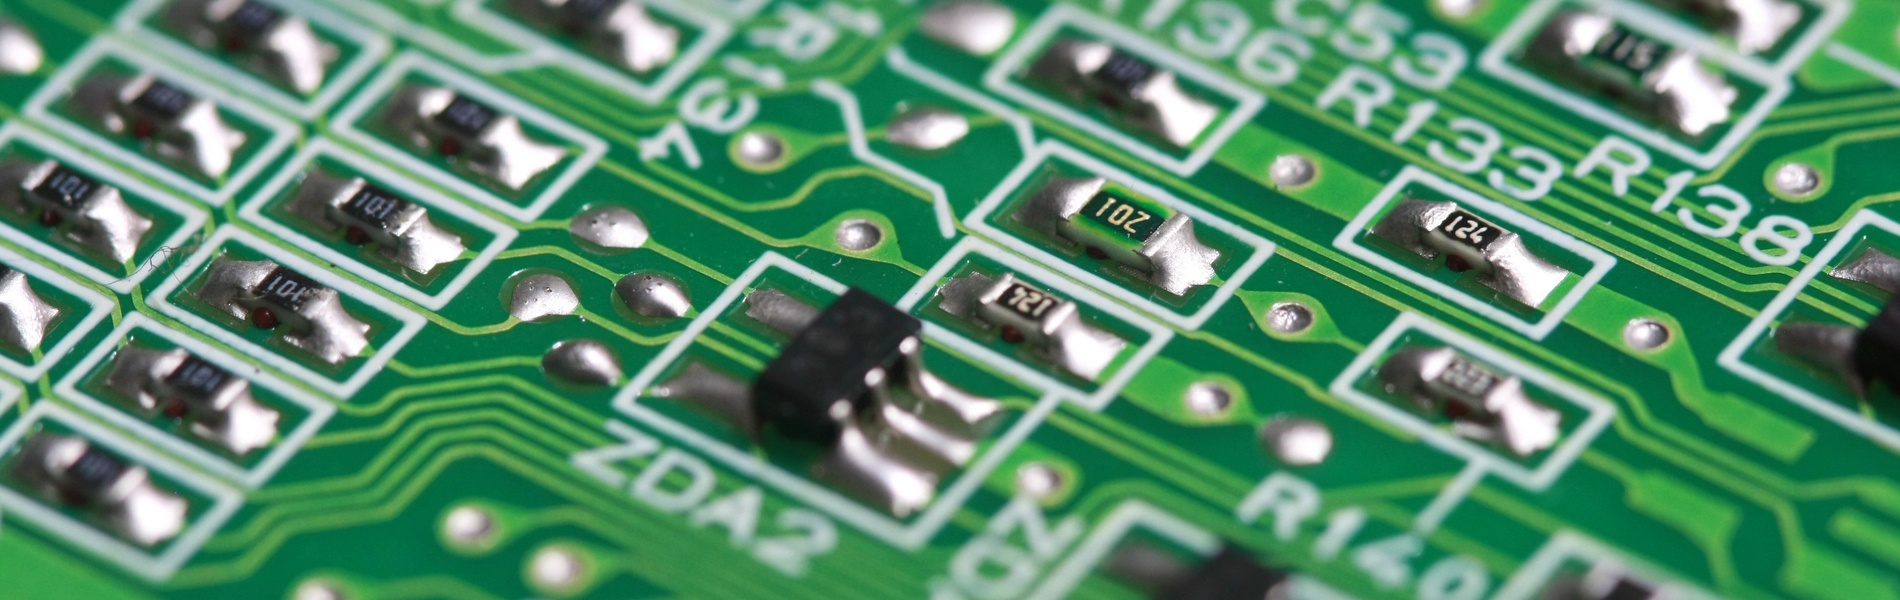 new-product-introduction-solder-banner.jpg